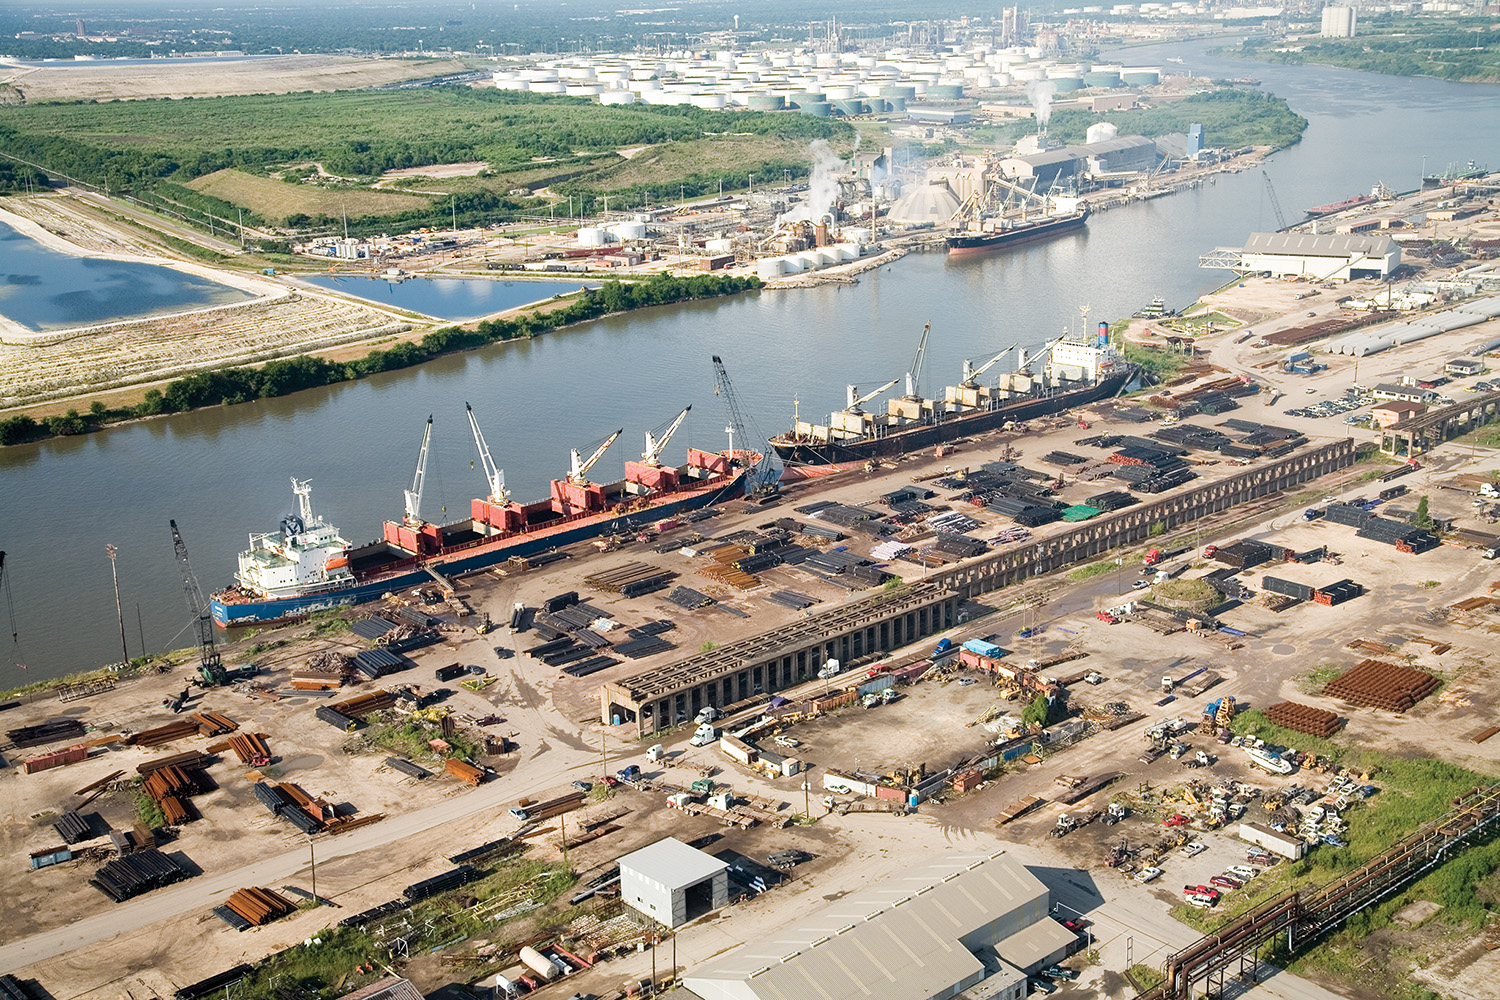 Watco Companies LLC, the owner and operator of Greens Port Industrial Park, located on the Houston Ship Channel, has acquired the assets of Industrial Terminals L.P. (Photo courtesy of Watco Companies LLC)